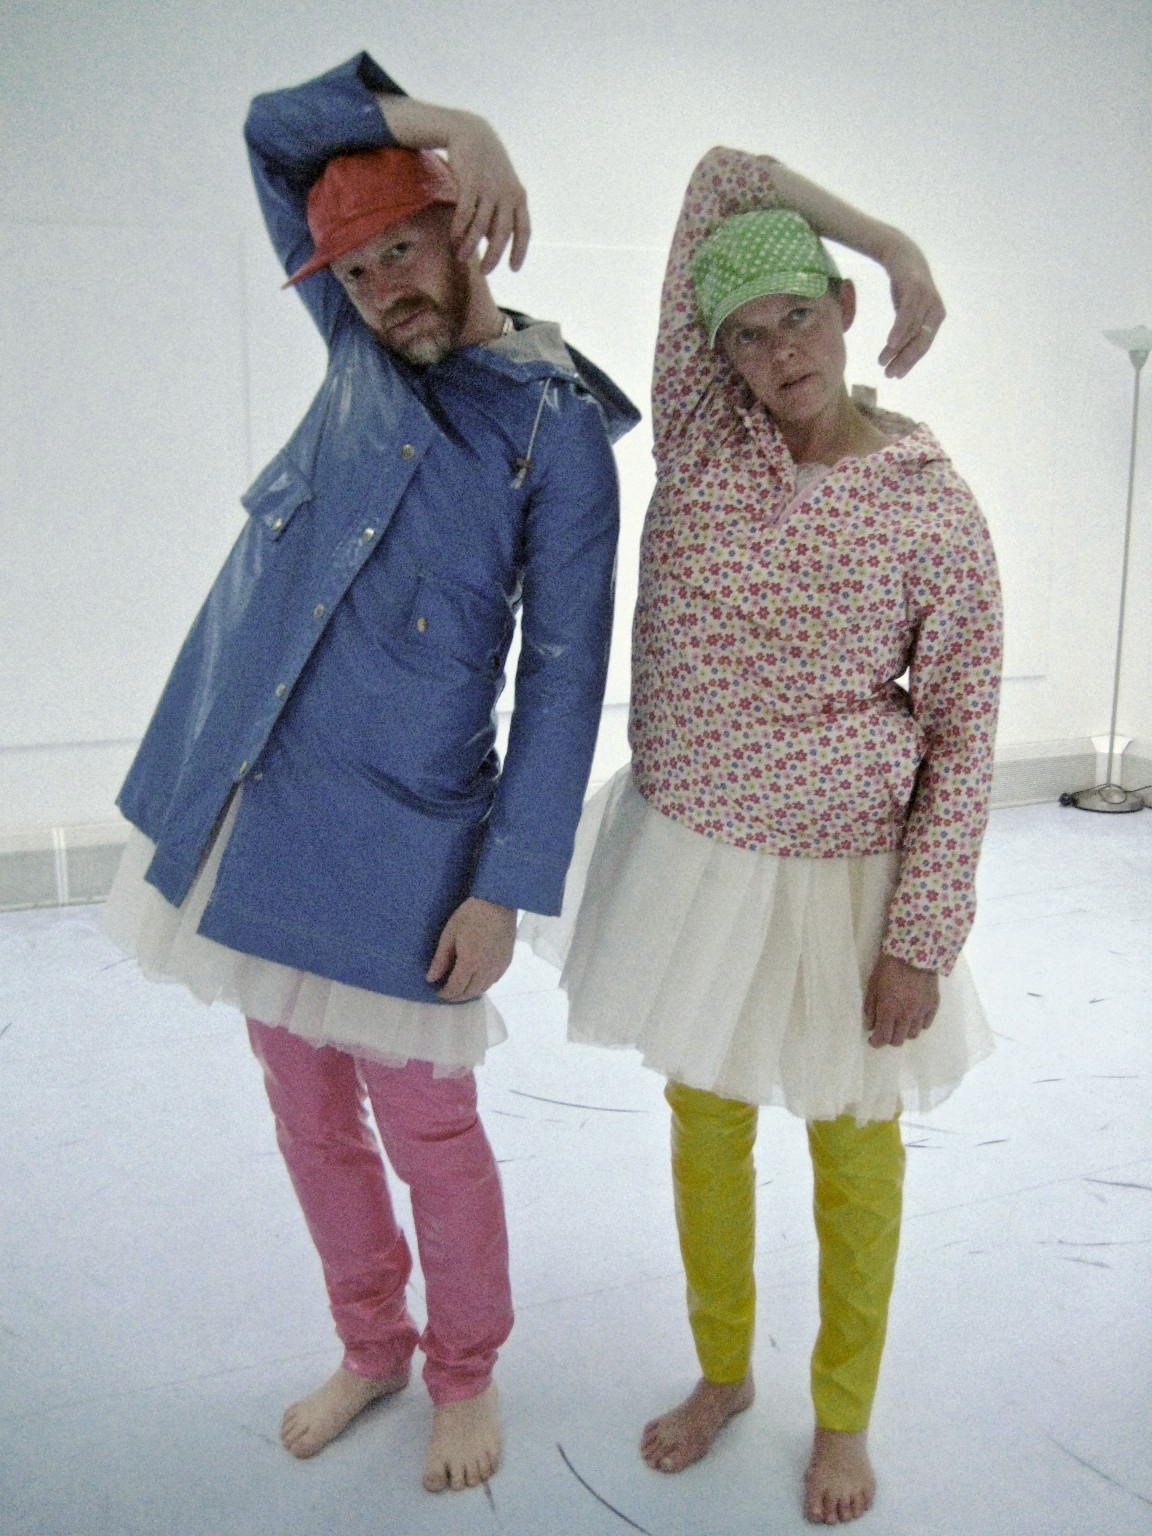 Andrew Barker and Kate Brown demonstrating 'swan' costumes.